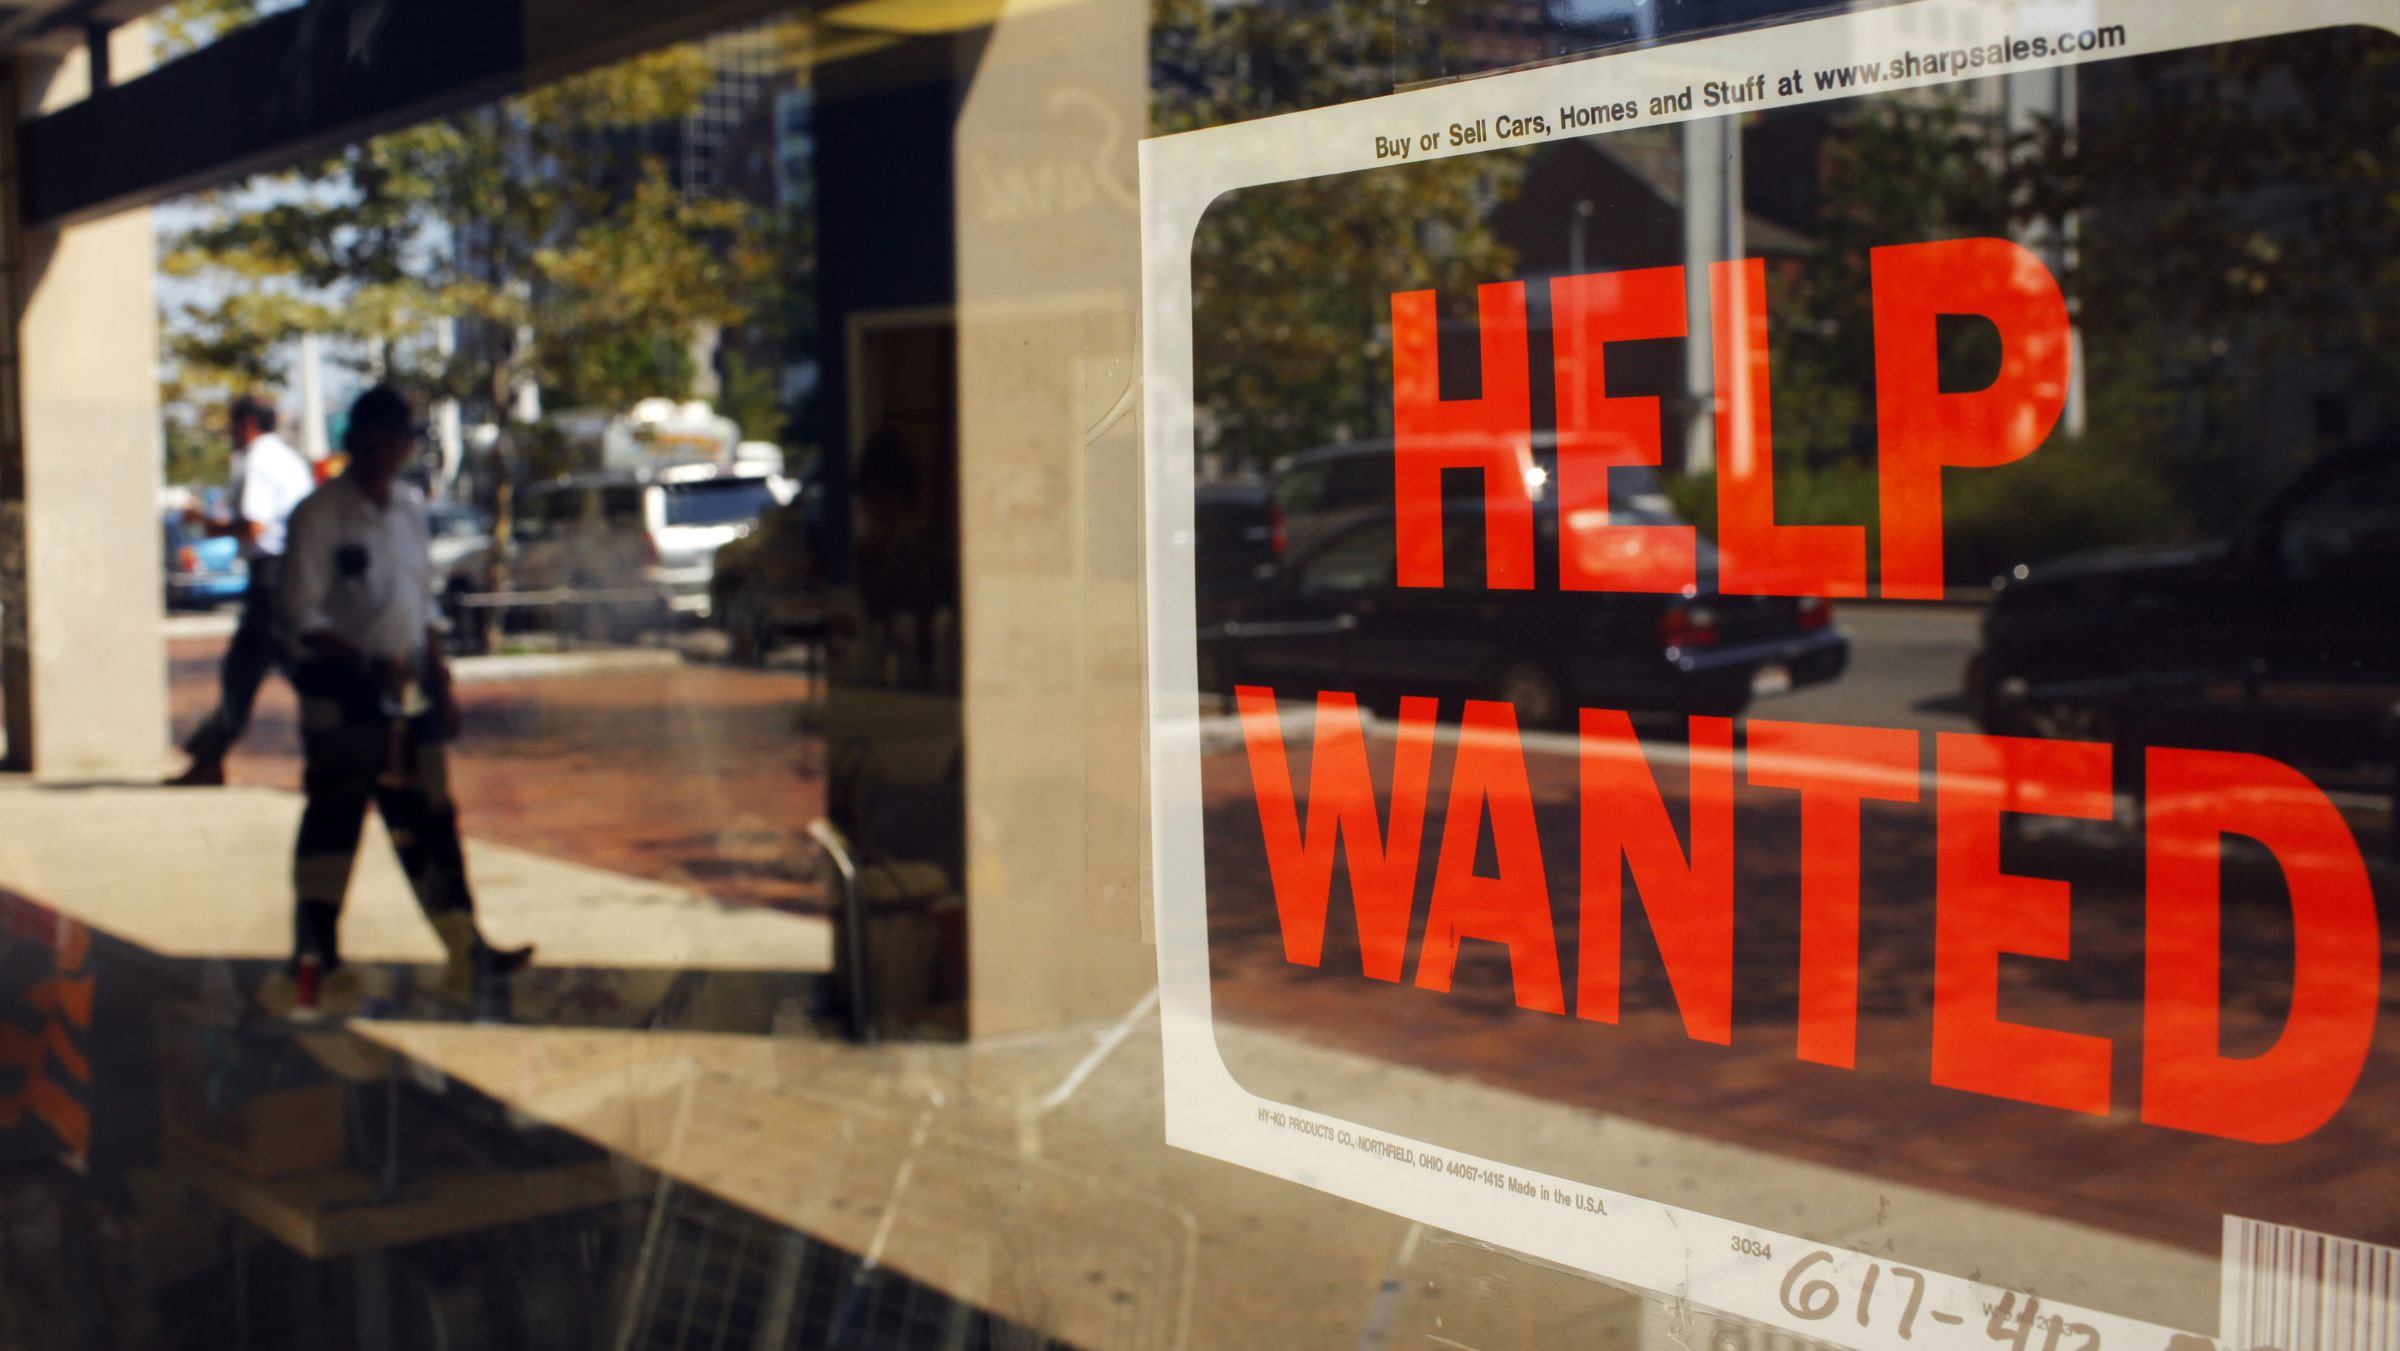 """A """"Help Wanted"""" sign in the window advertises a job opening at a dry cleaners in Boston, Massachusetts September 1, 2010. REUTERS/Brian Snyder (UNITED STATES - Tags: BUSINESS EMPLOYMENT)"""